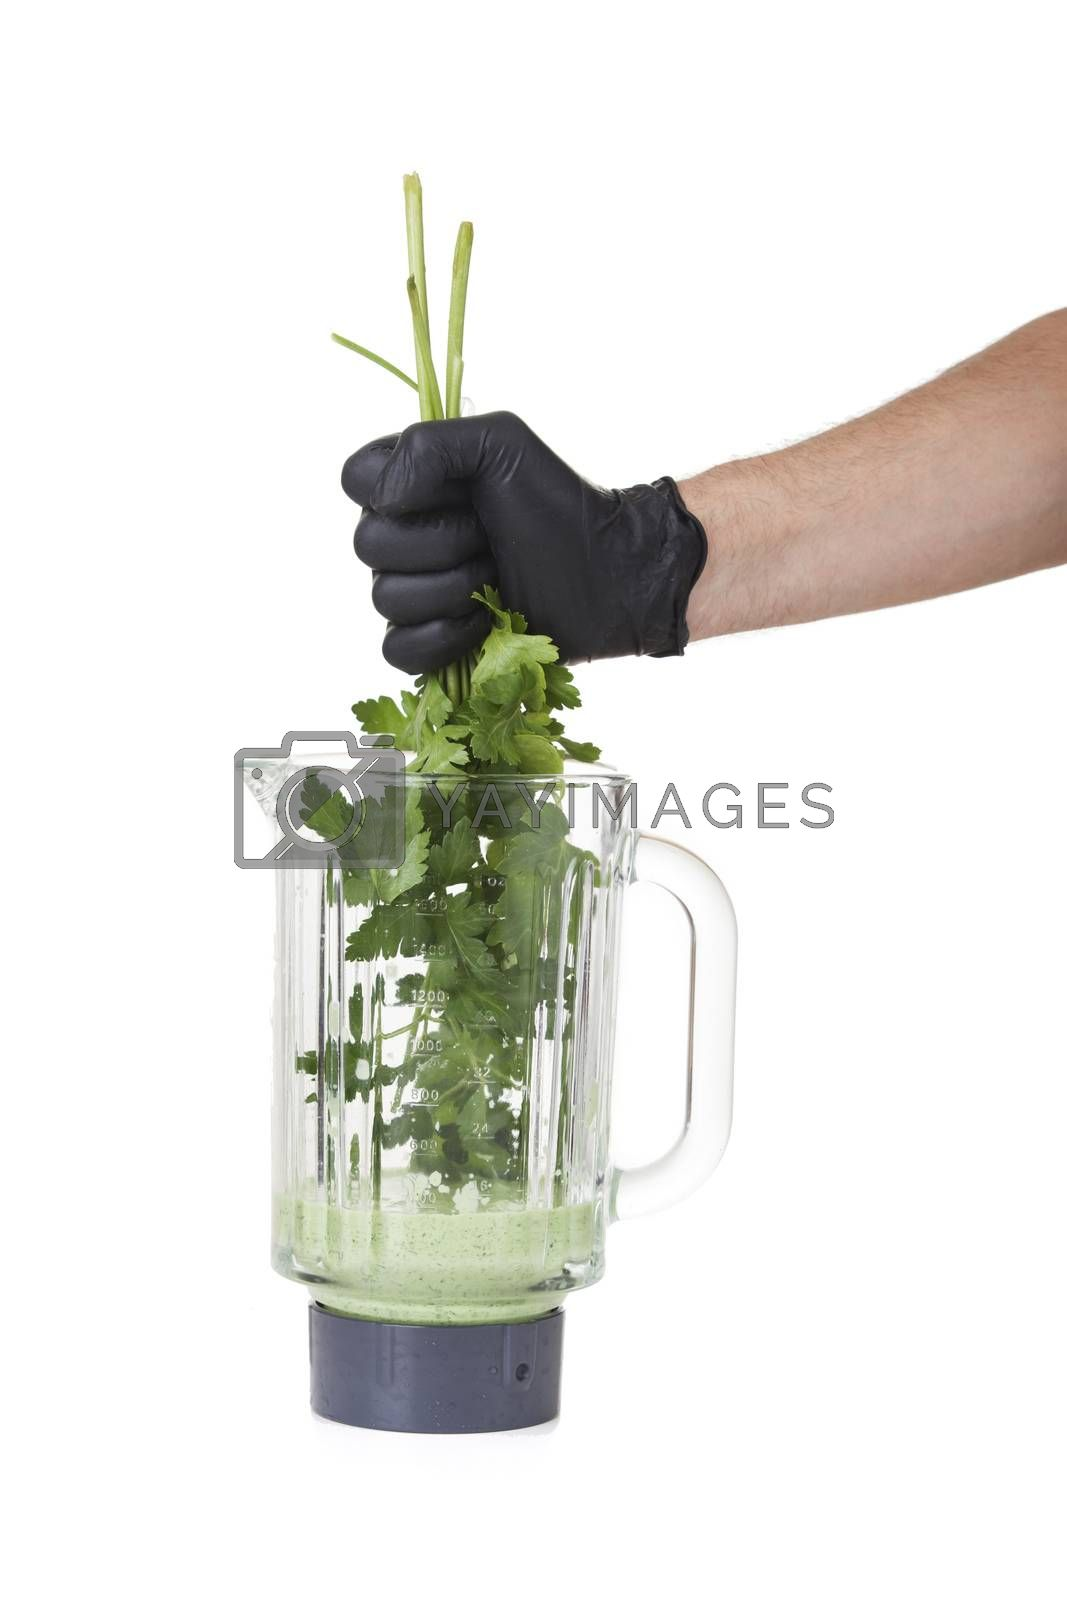 hand holding herbs in a mixer  by bernjuer